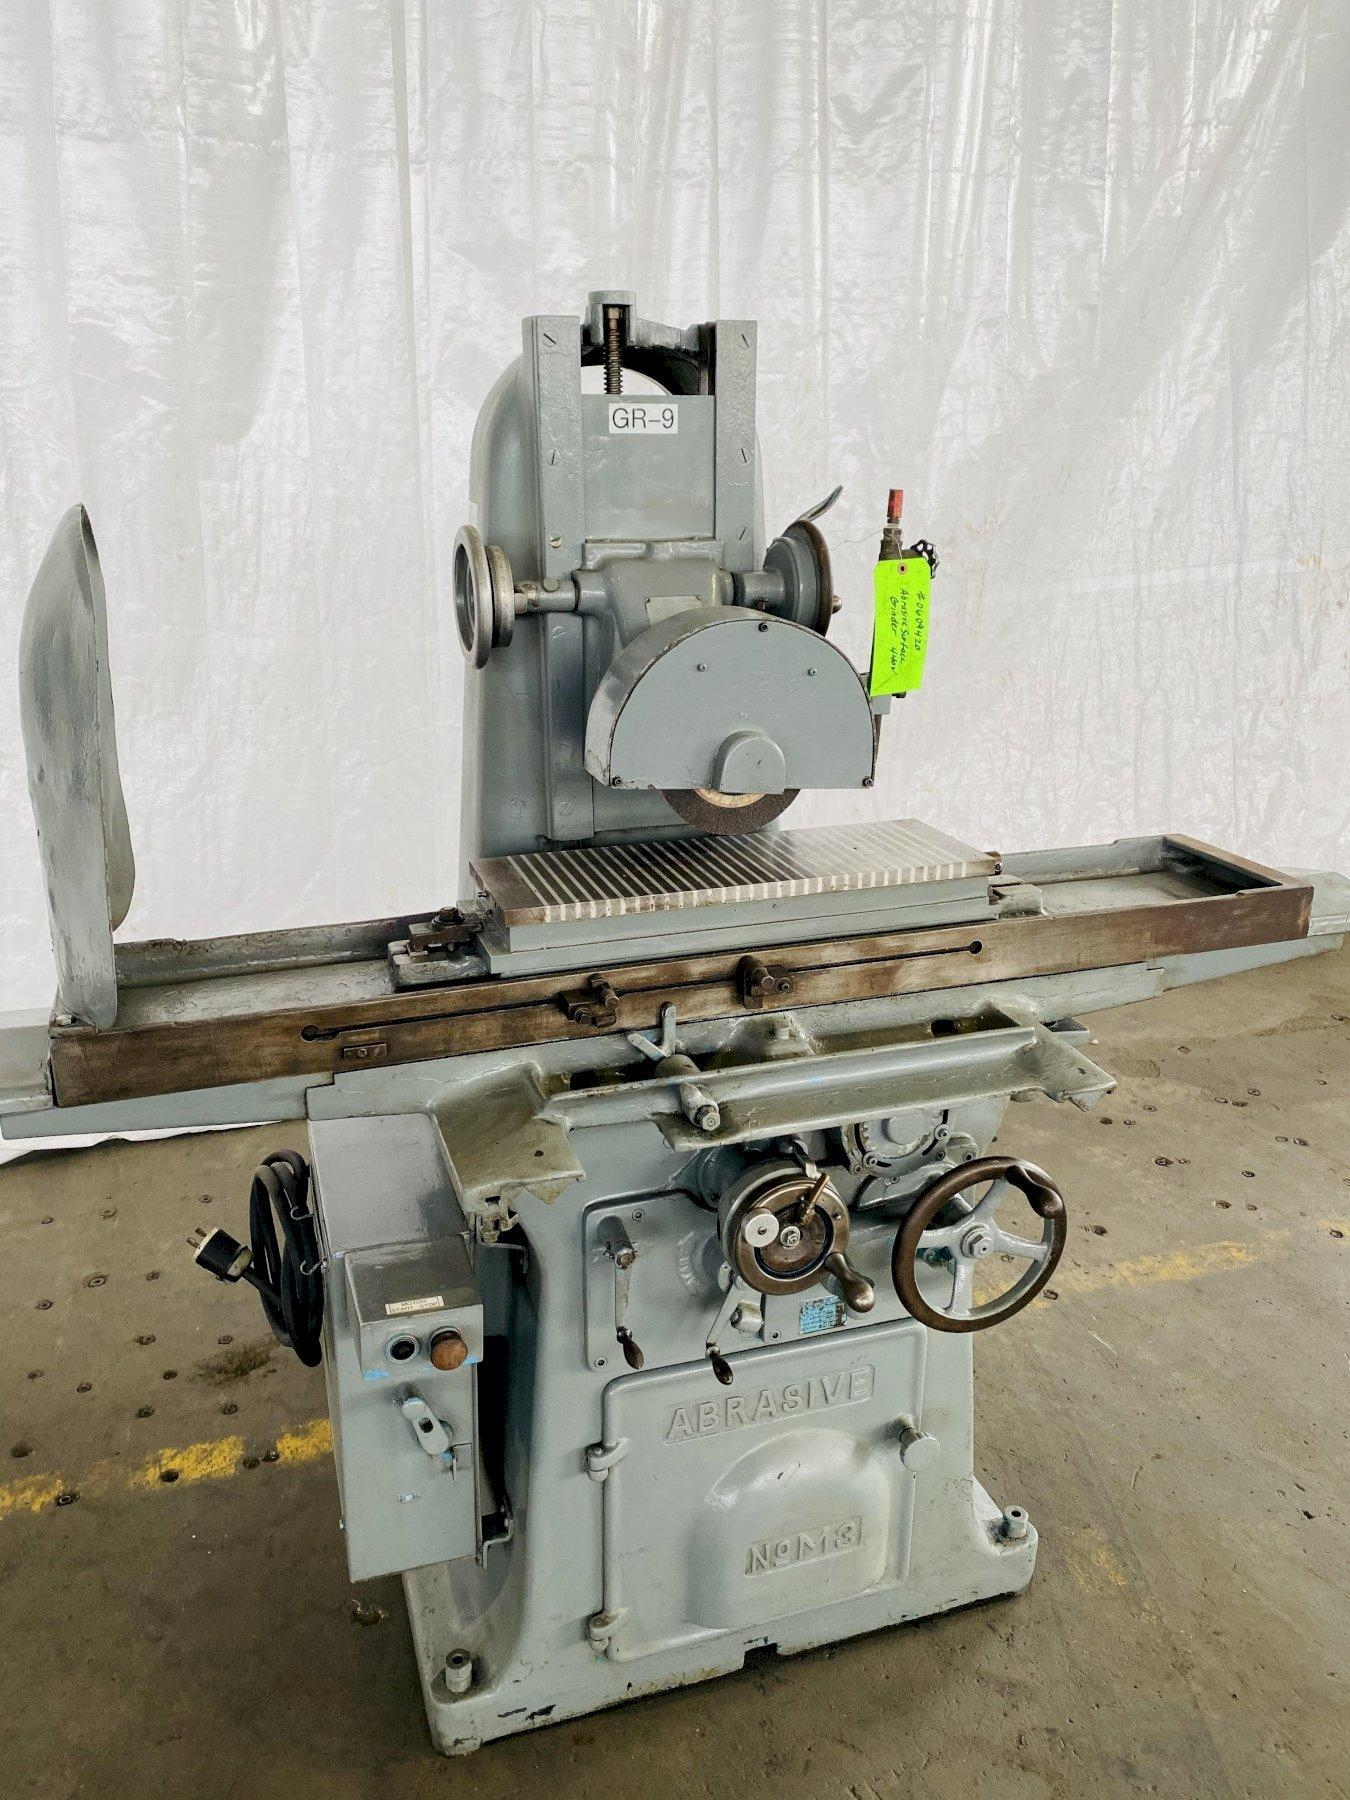 "8"" X 24"" DOALL ABRASIVE NO. M3 SURFACE GRINDER. STOCK # 0609420"